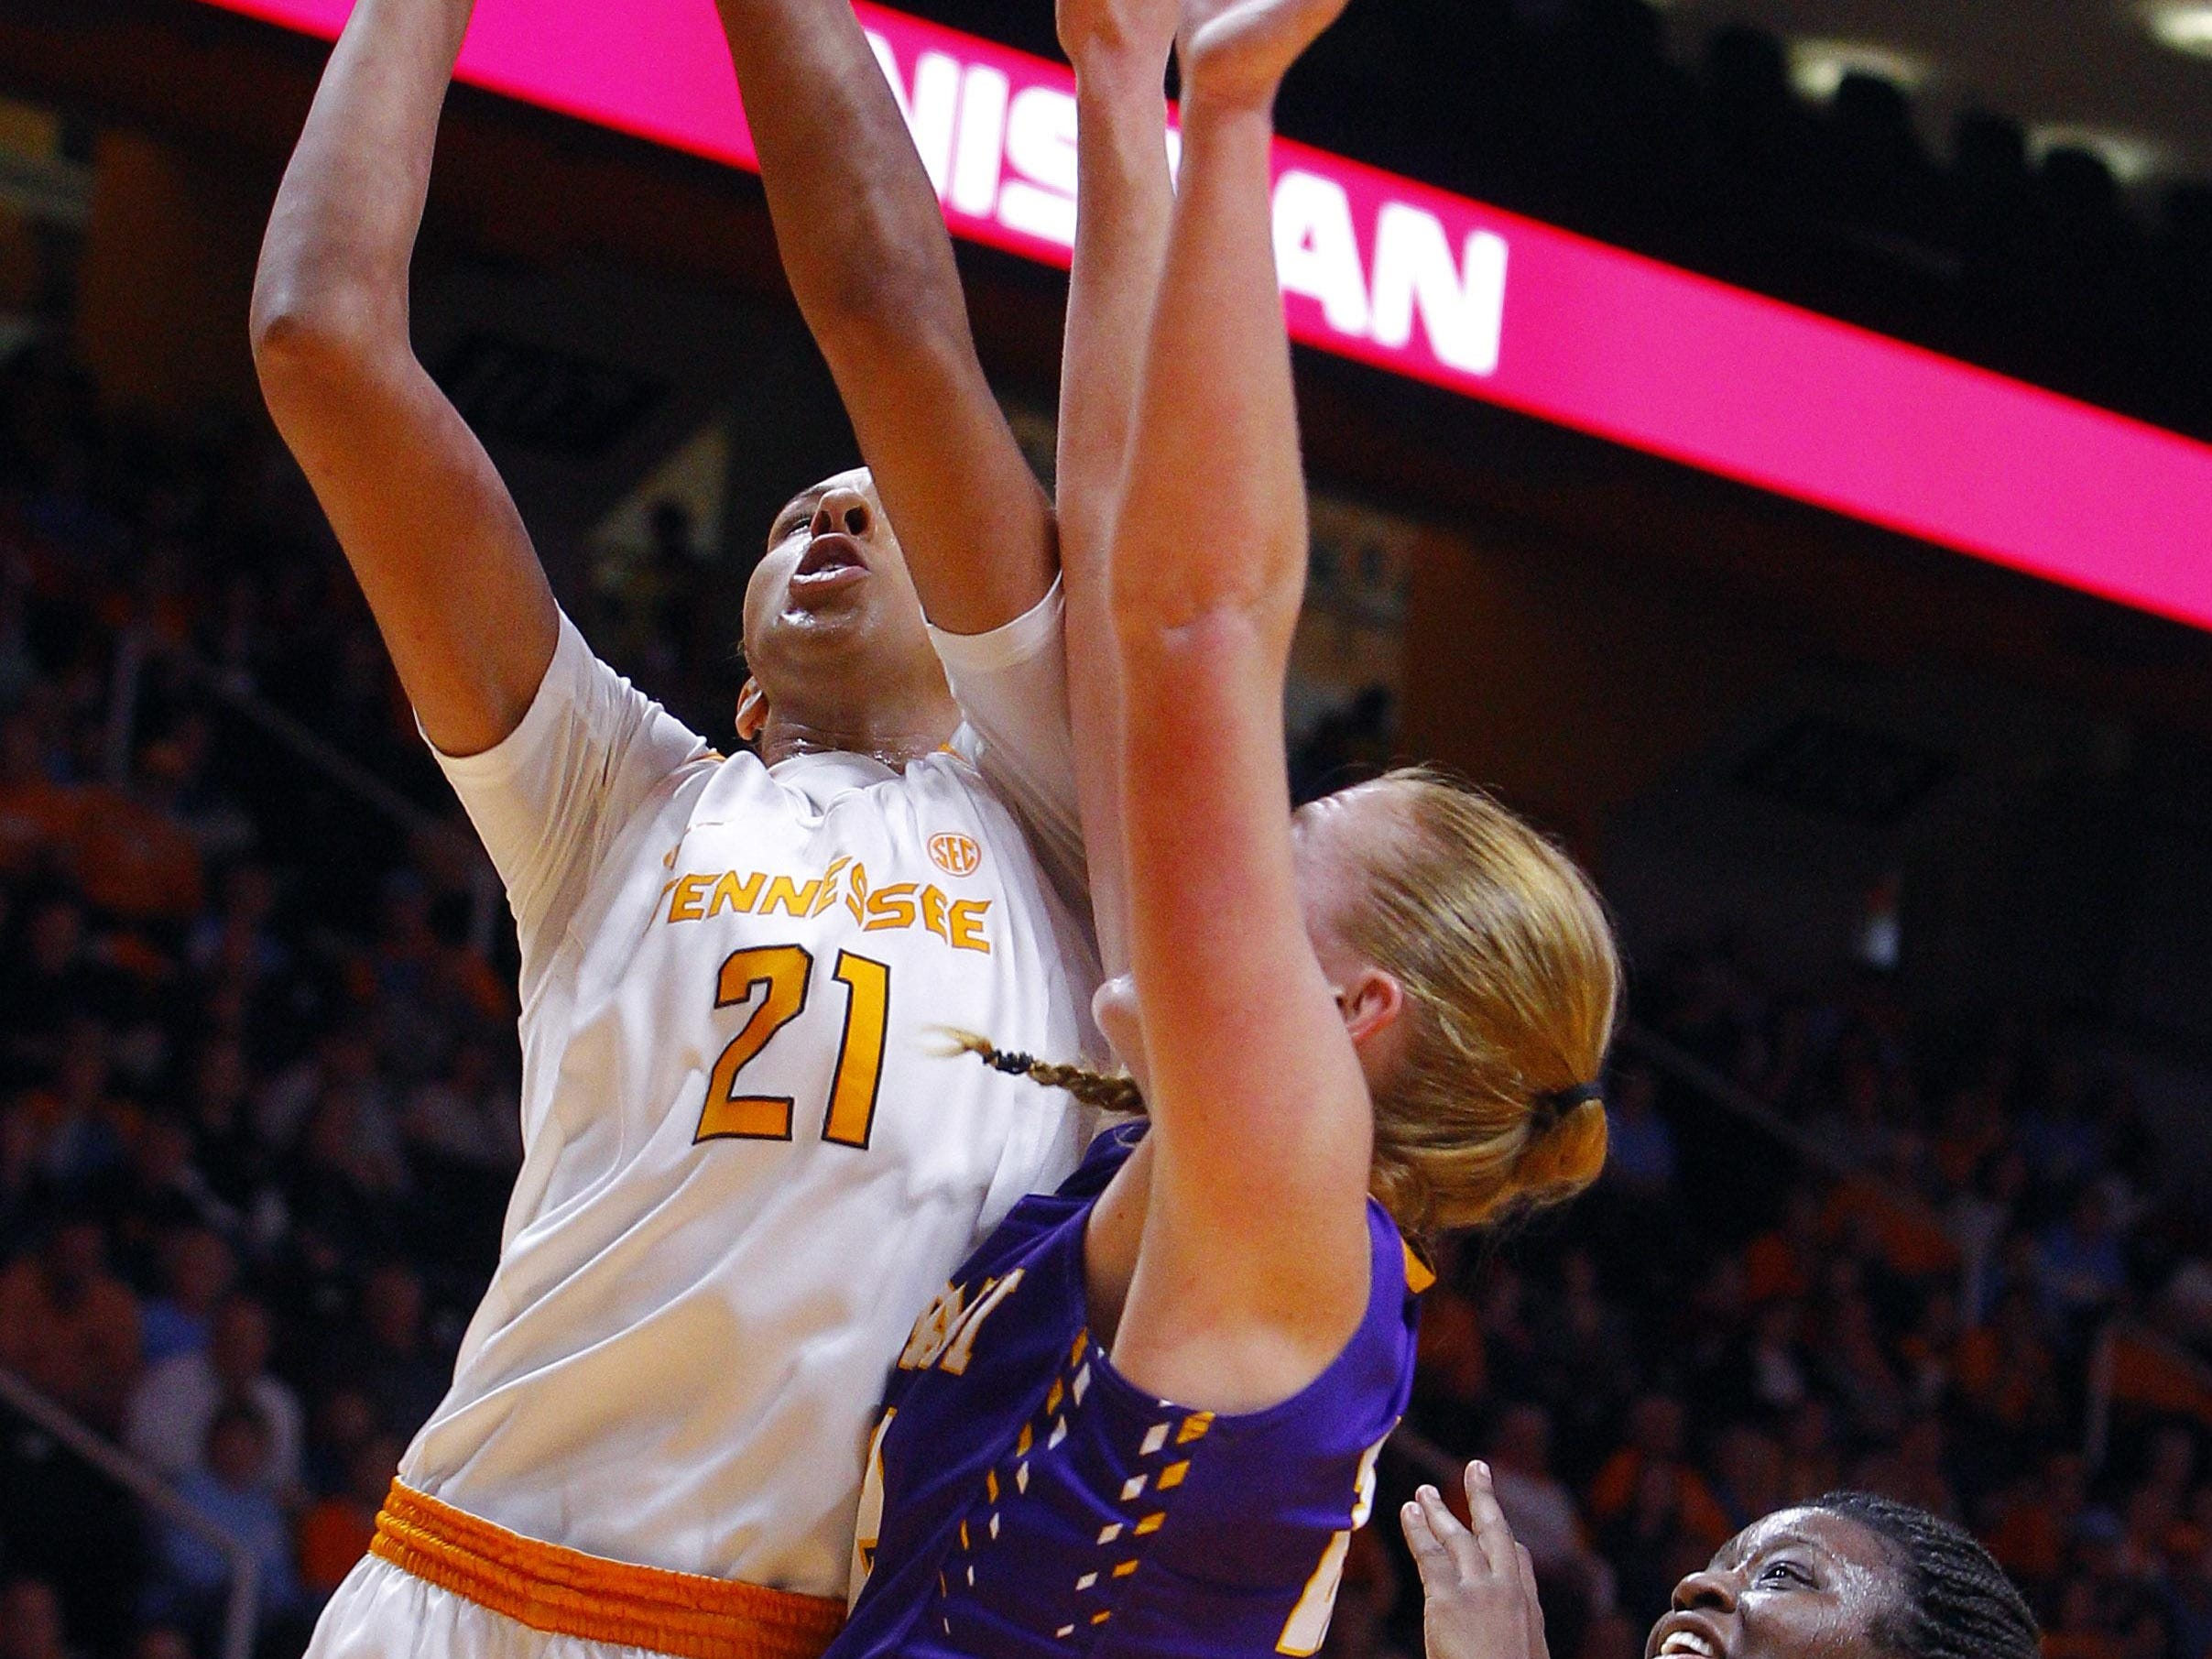 Tennessee center Mercedes Russell (21) shoots as she's defended by Albany forward Heather Forster (22) on Friday.